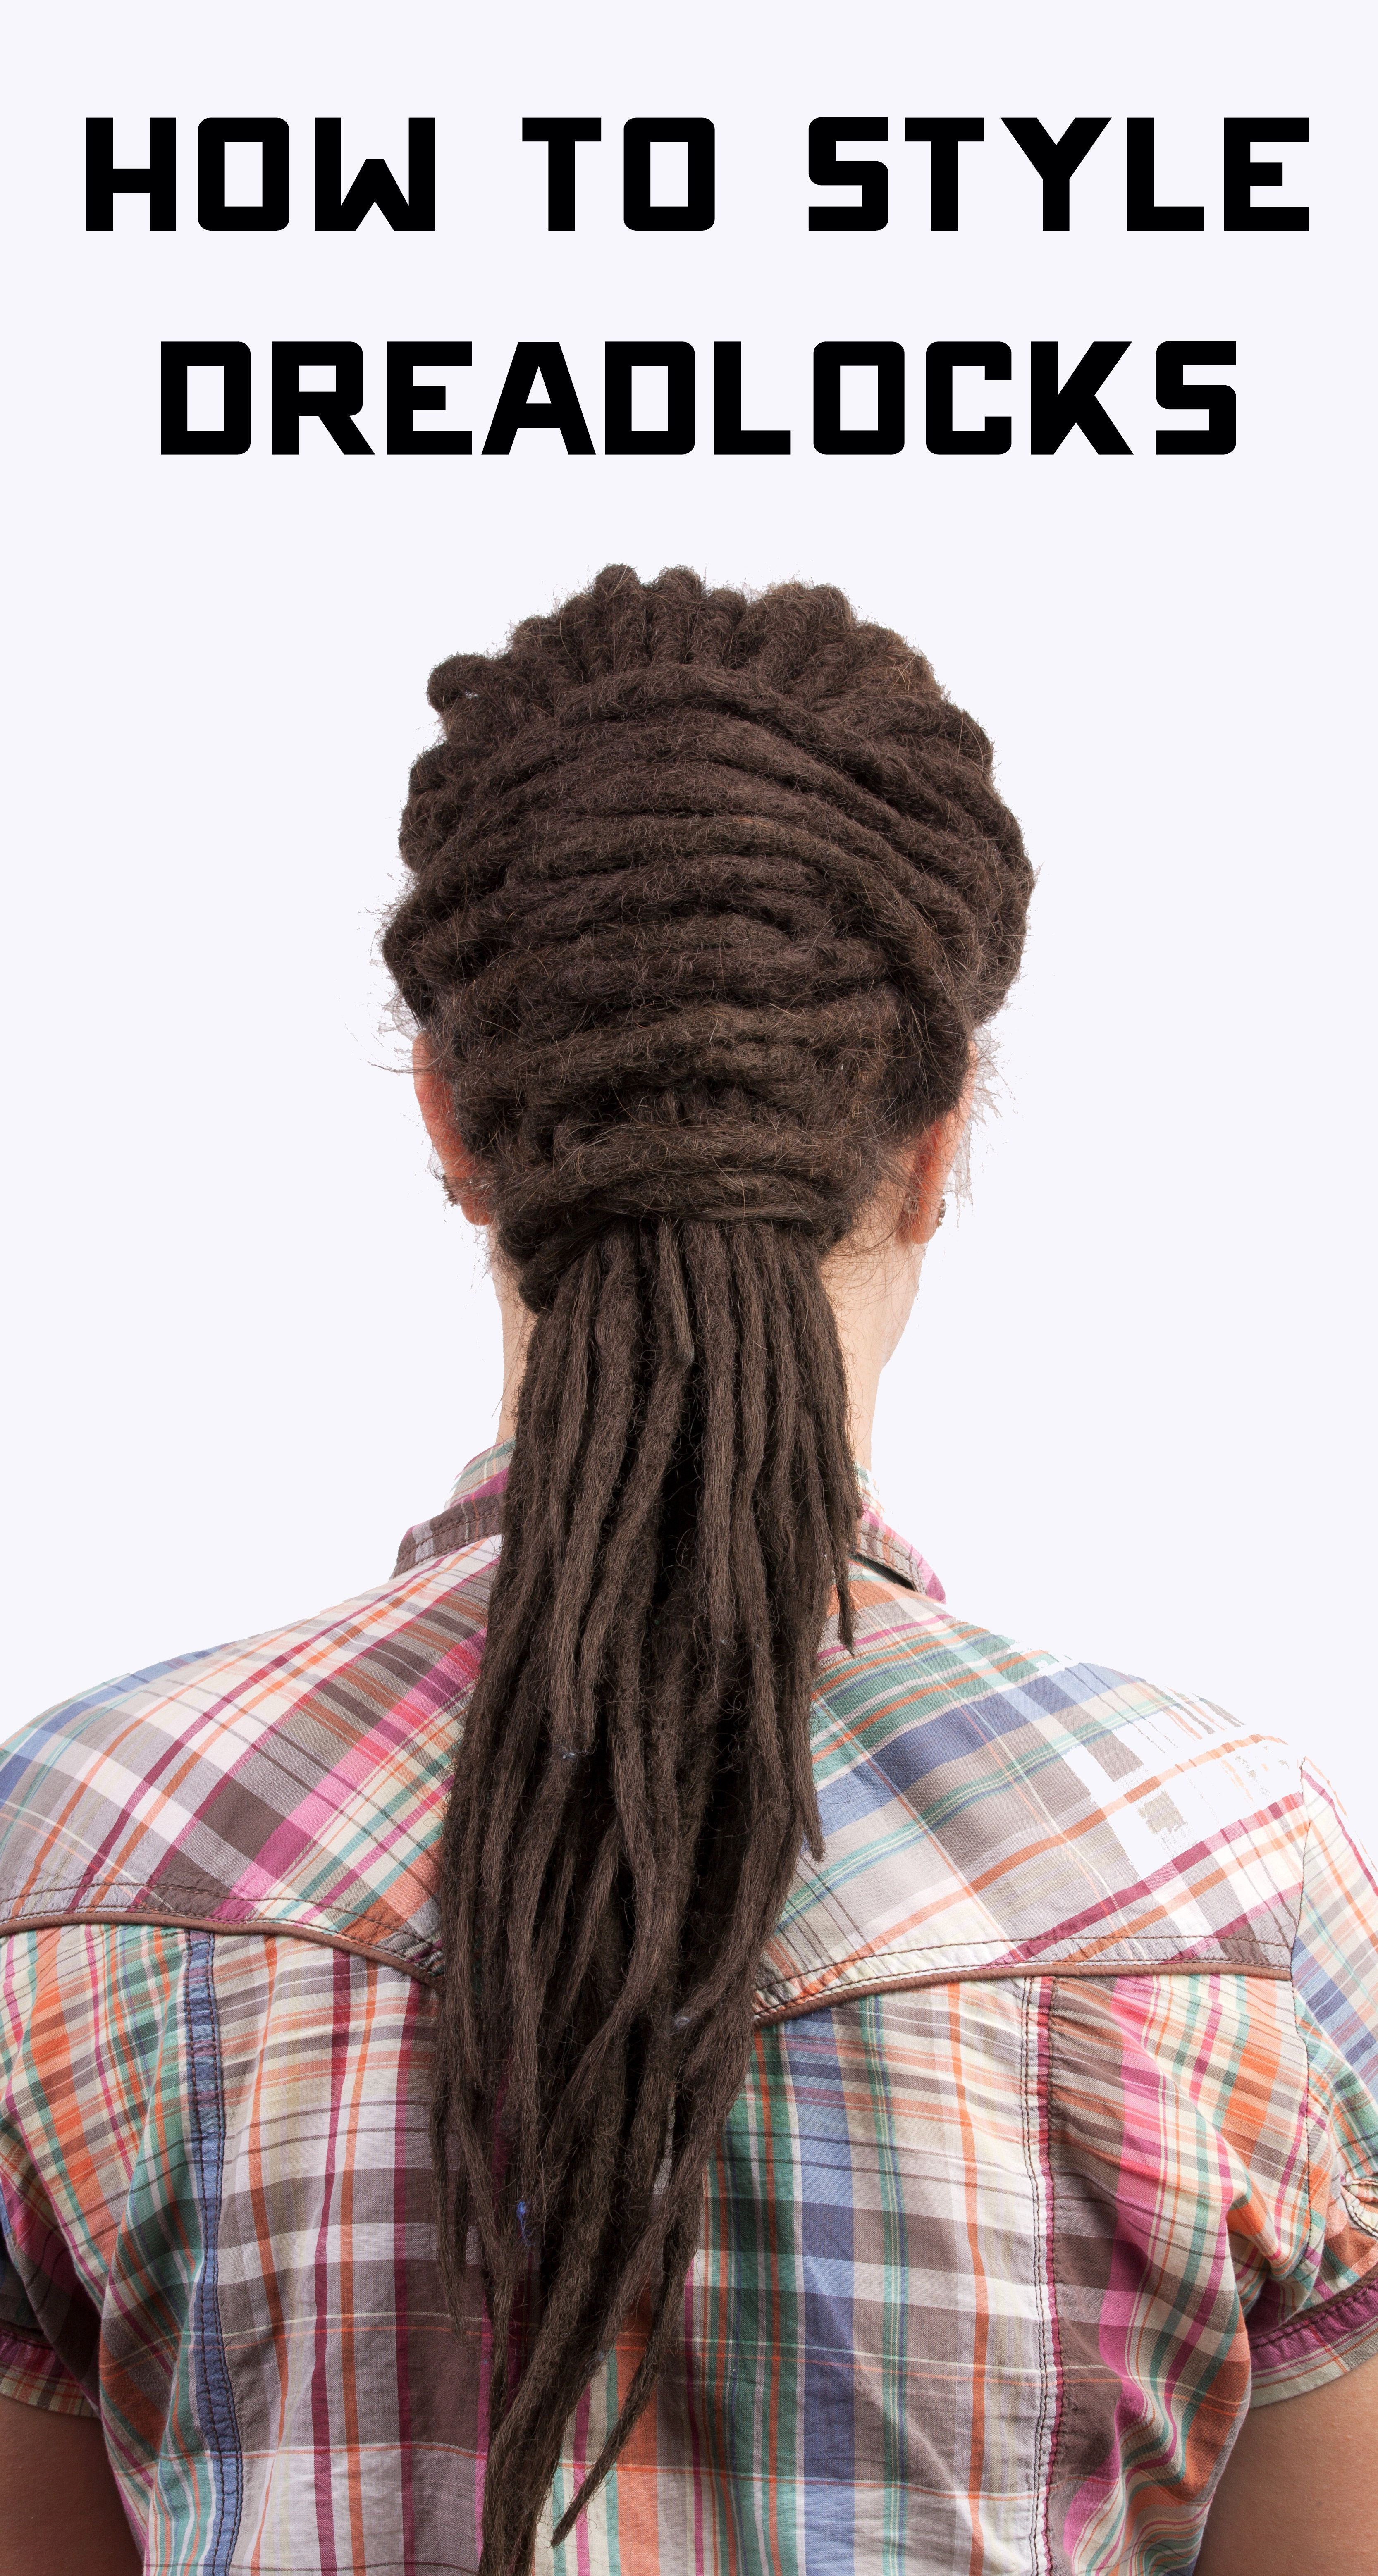 how to get dreadlocks step by step